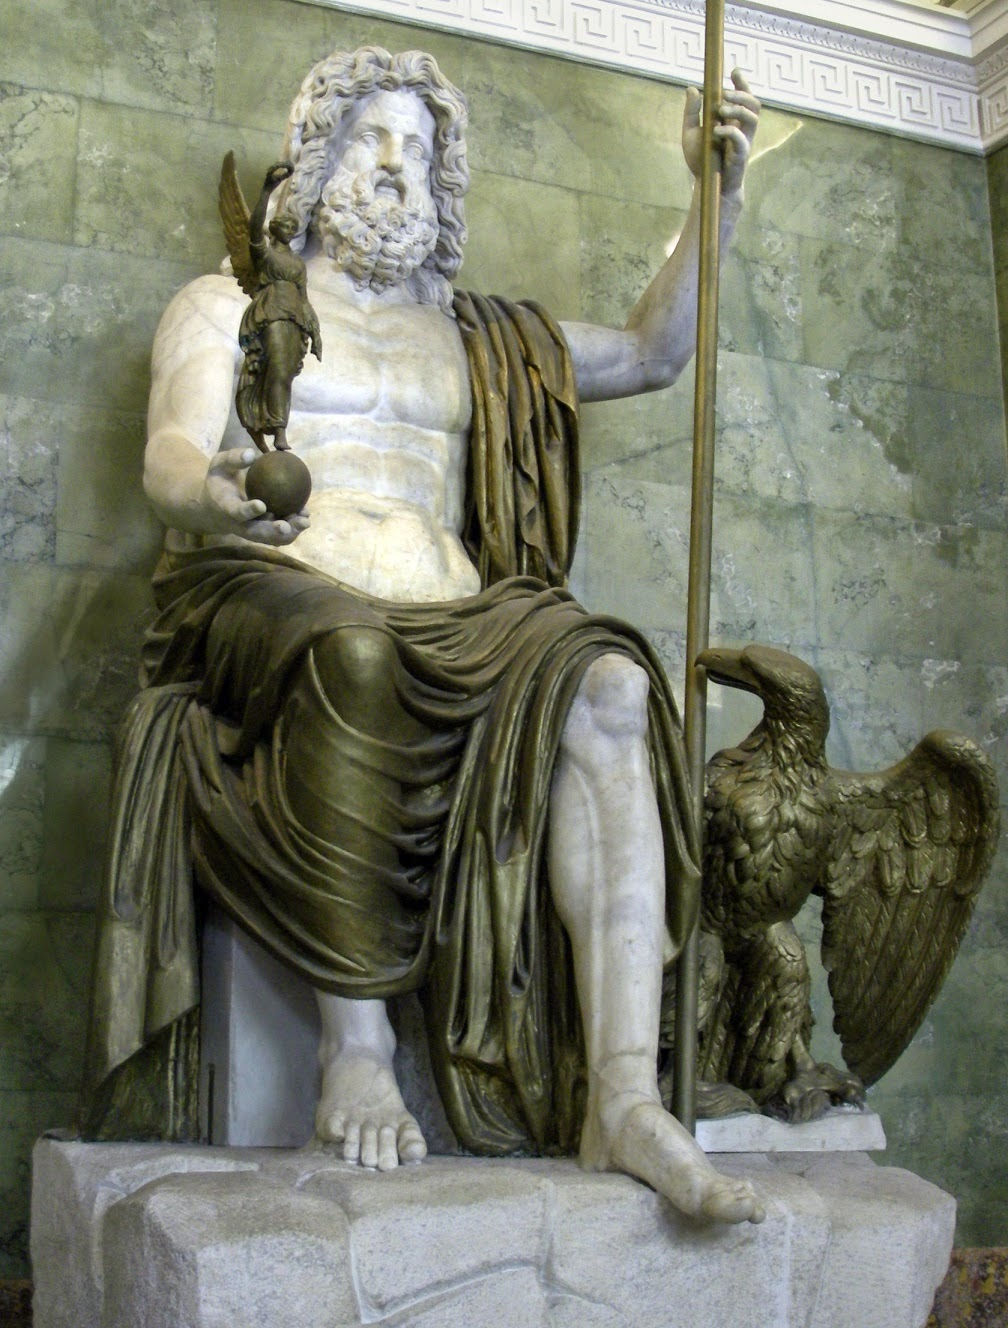 Marble naturally illuminated the statue of Zeus at Olympia